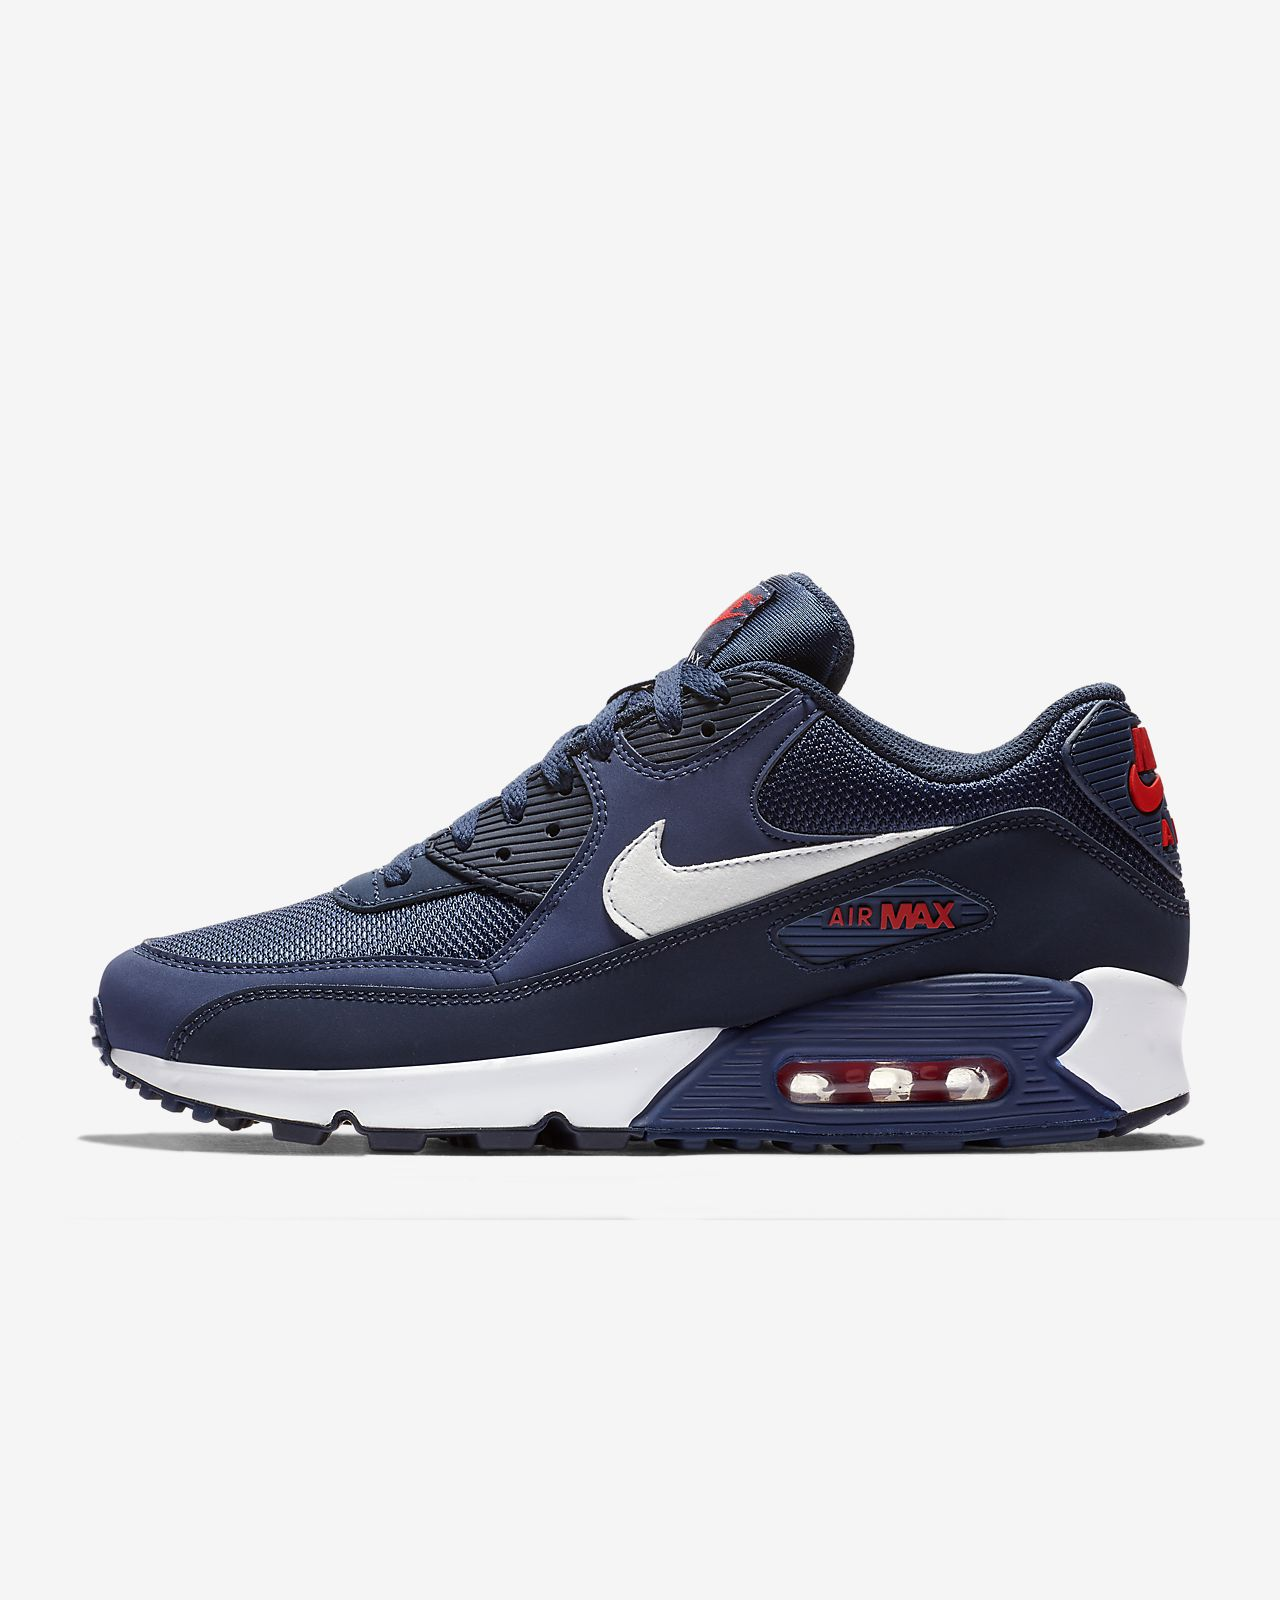 separation shoes d0ecd 4e47b ... Nike Air Max 90 Essential Men s Shoe